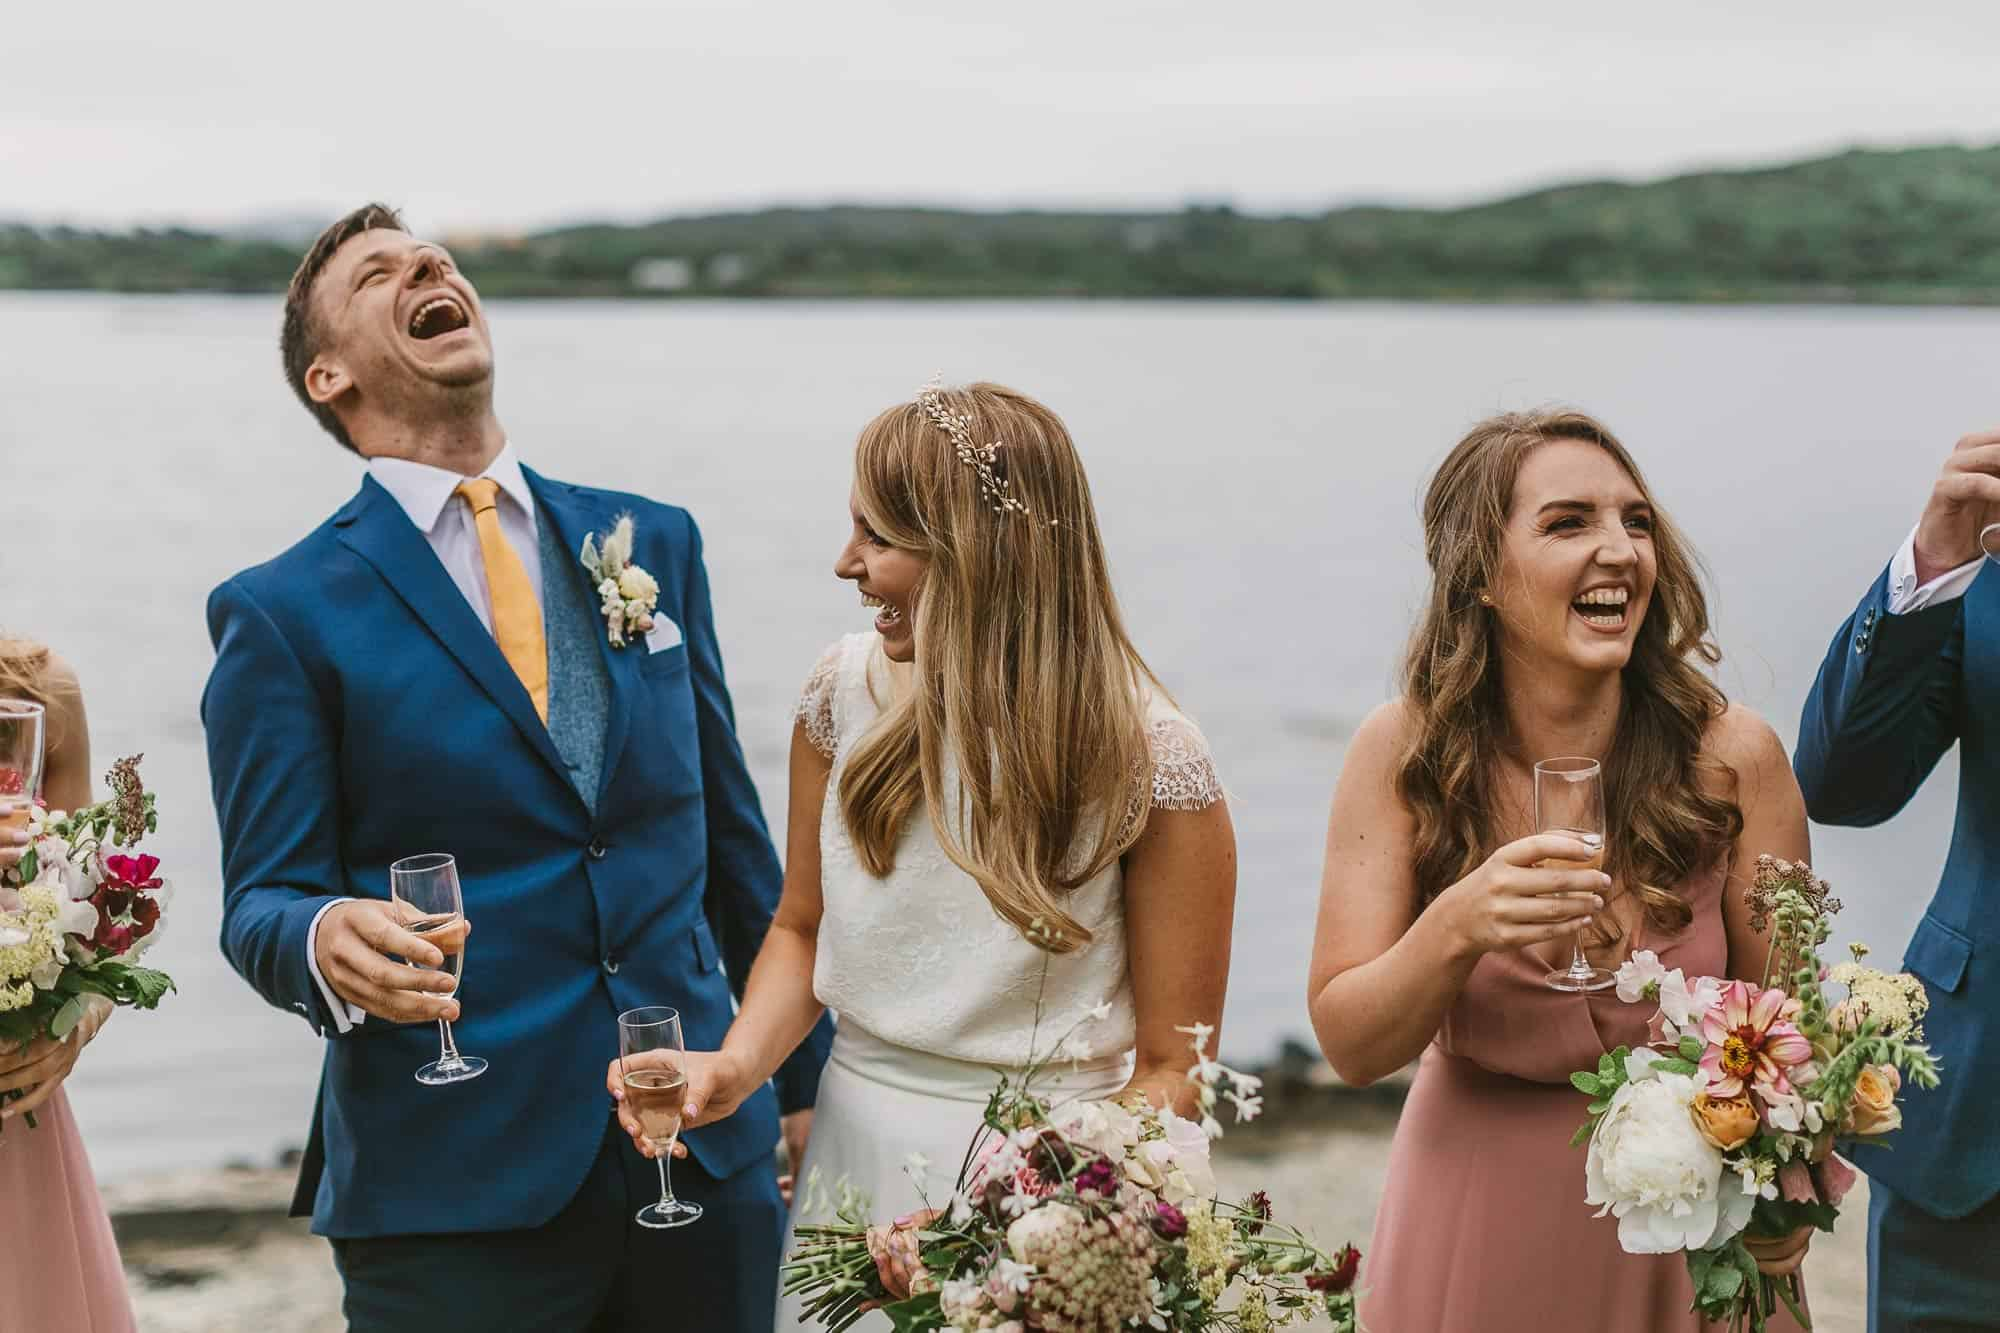 Elopement Ireland Connemara Laugher and Love with champagne on the beach